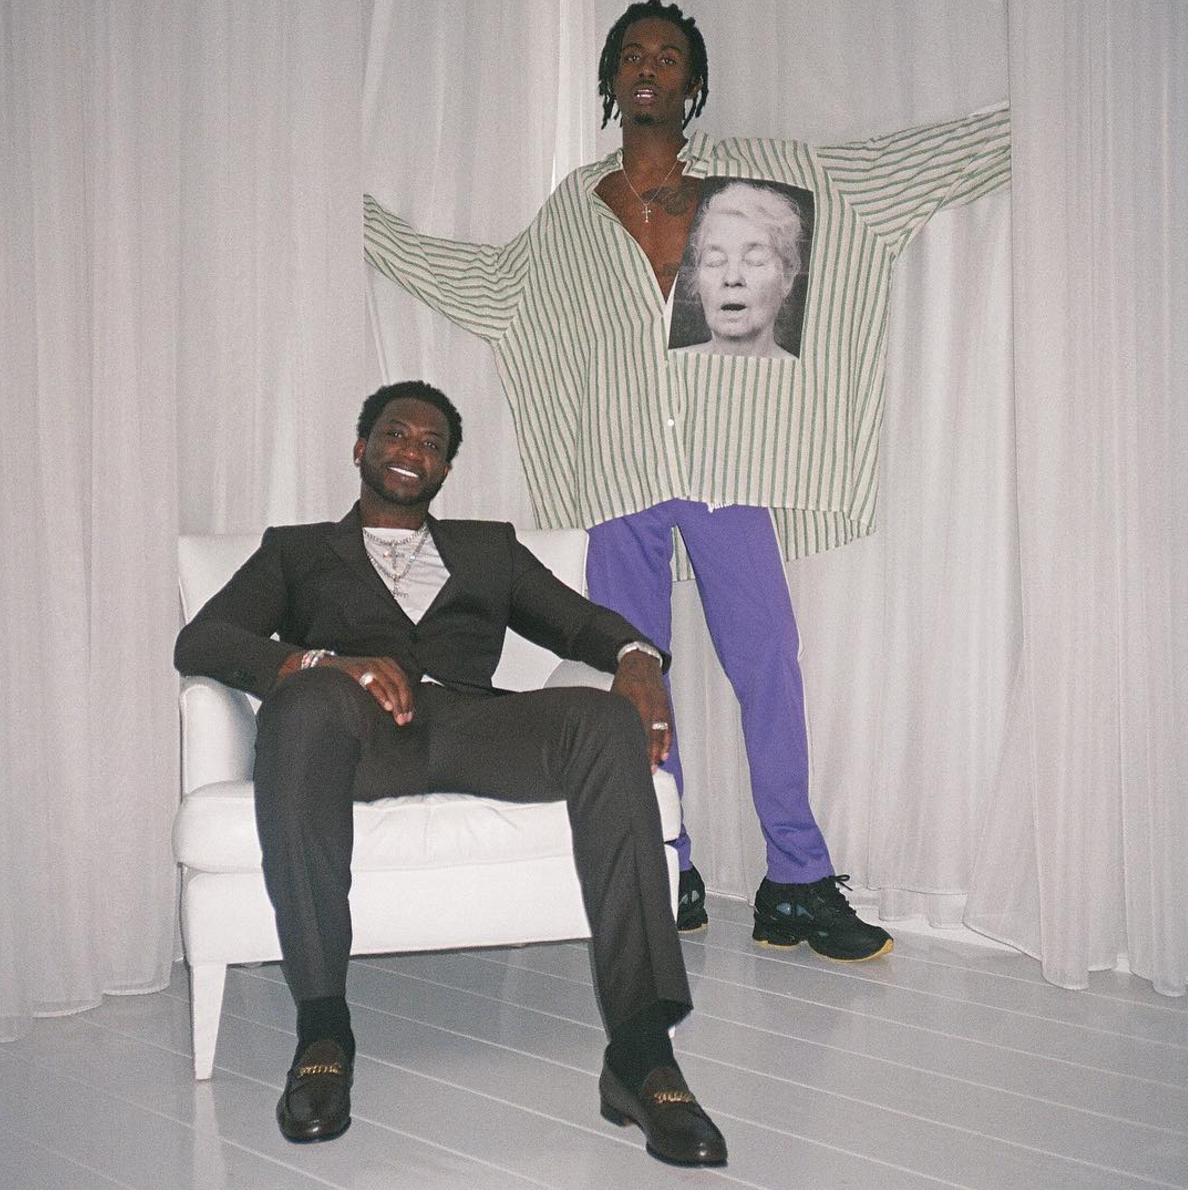 SPOTTED: Playboi Carti In Raf Simons Shirt, Sneakers And Palm Angels Pants